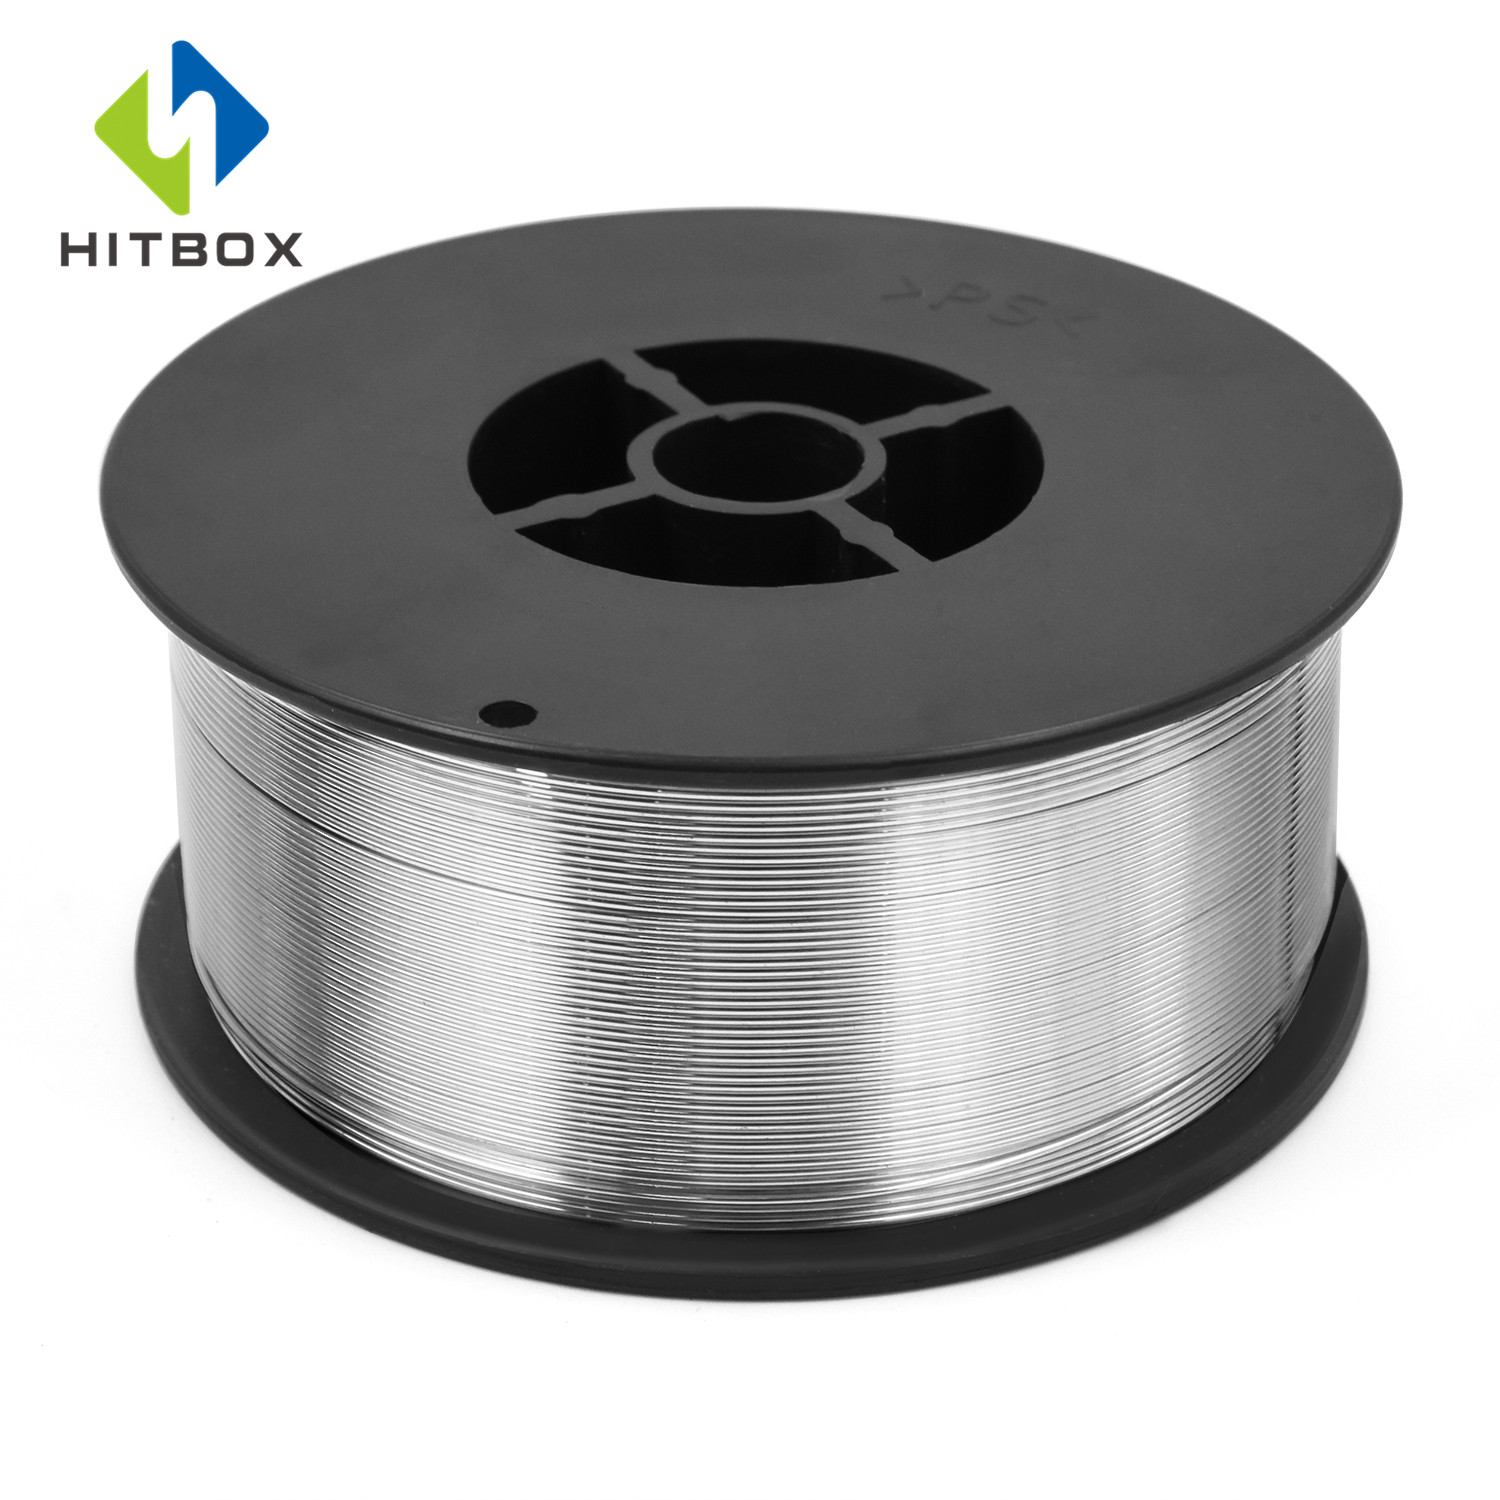 HITBOX Flux Core Wire Self-shielded No Gas Mig Wire 1kg Iron Welding 0.8mm Carbon Steel Flux Core Wire Mig Welding Gasless Wire(China)